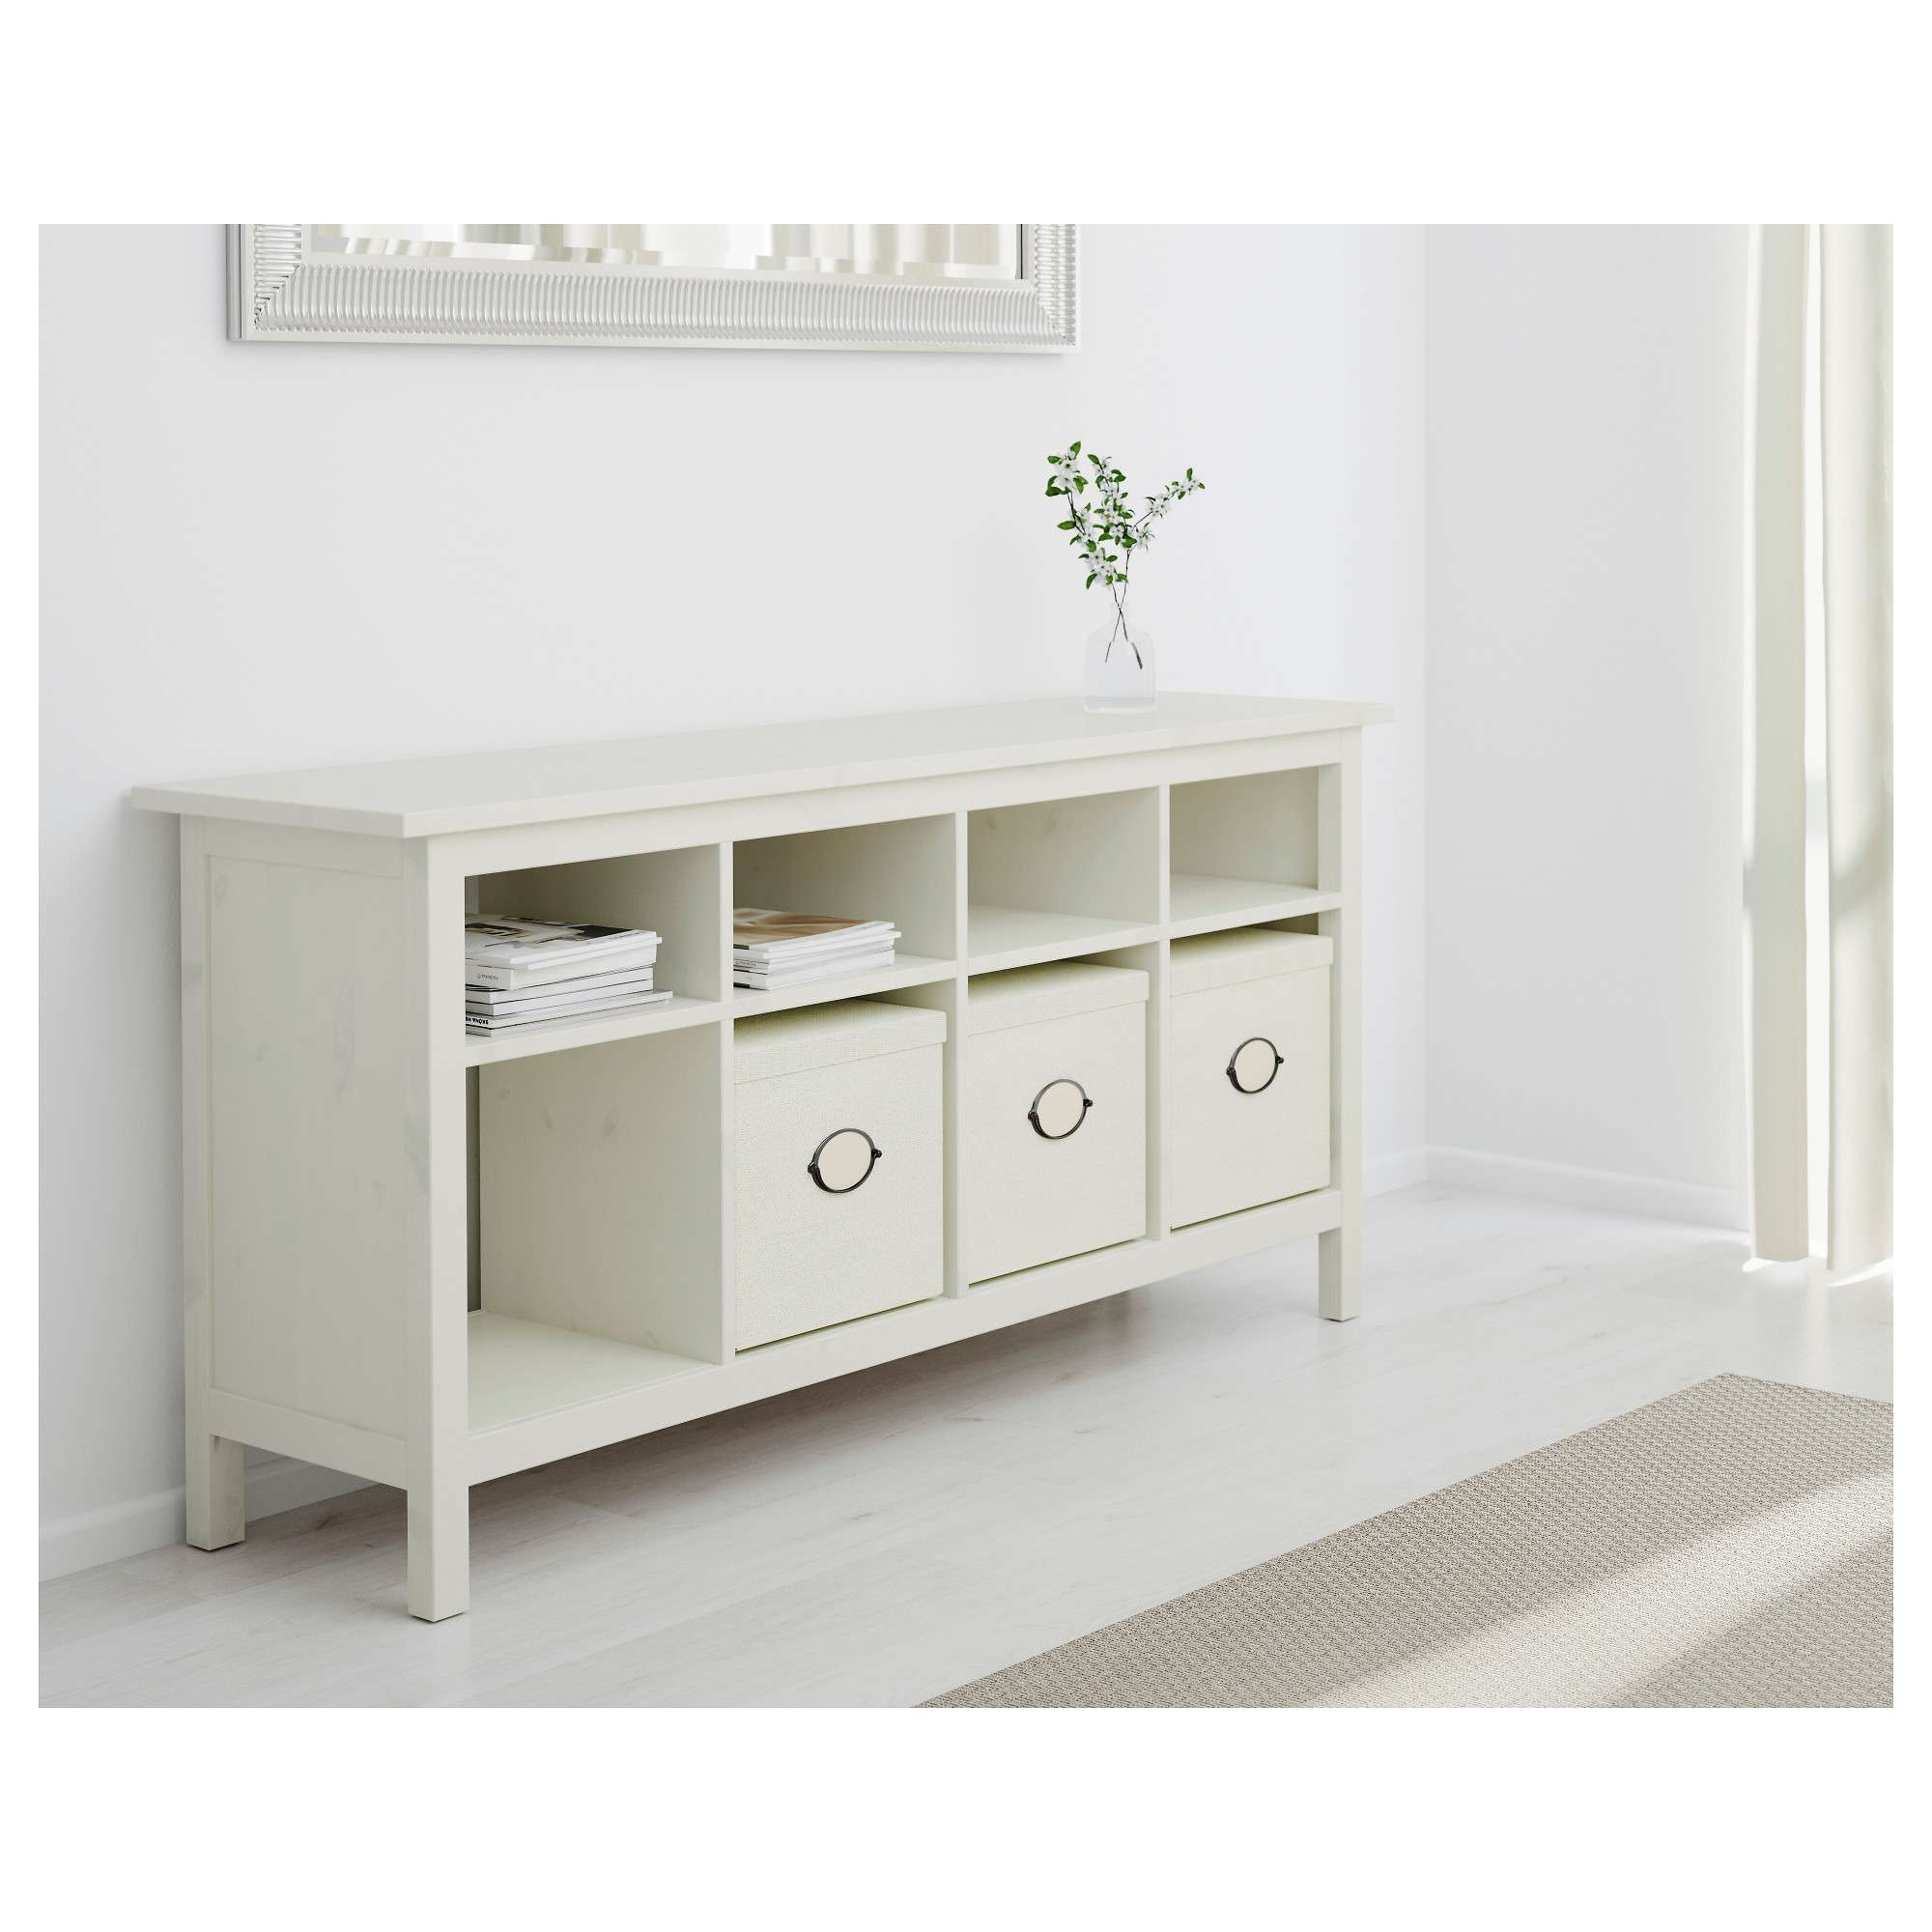 Hemnes Console Table White Stain 157x40 Cm – Ikea With Hemnes Sideboards (View 10 of 20)